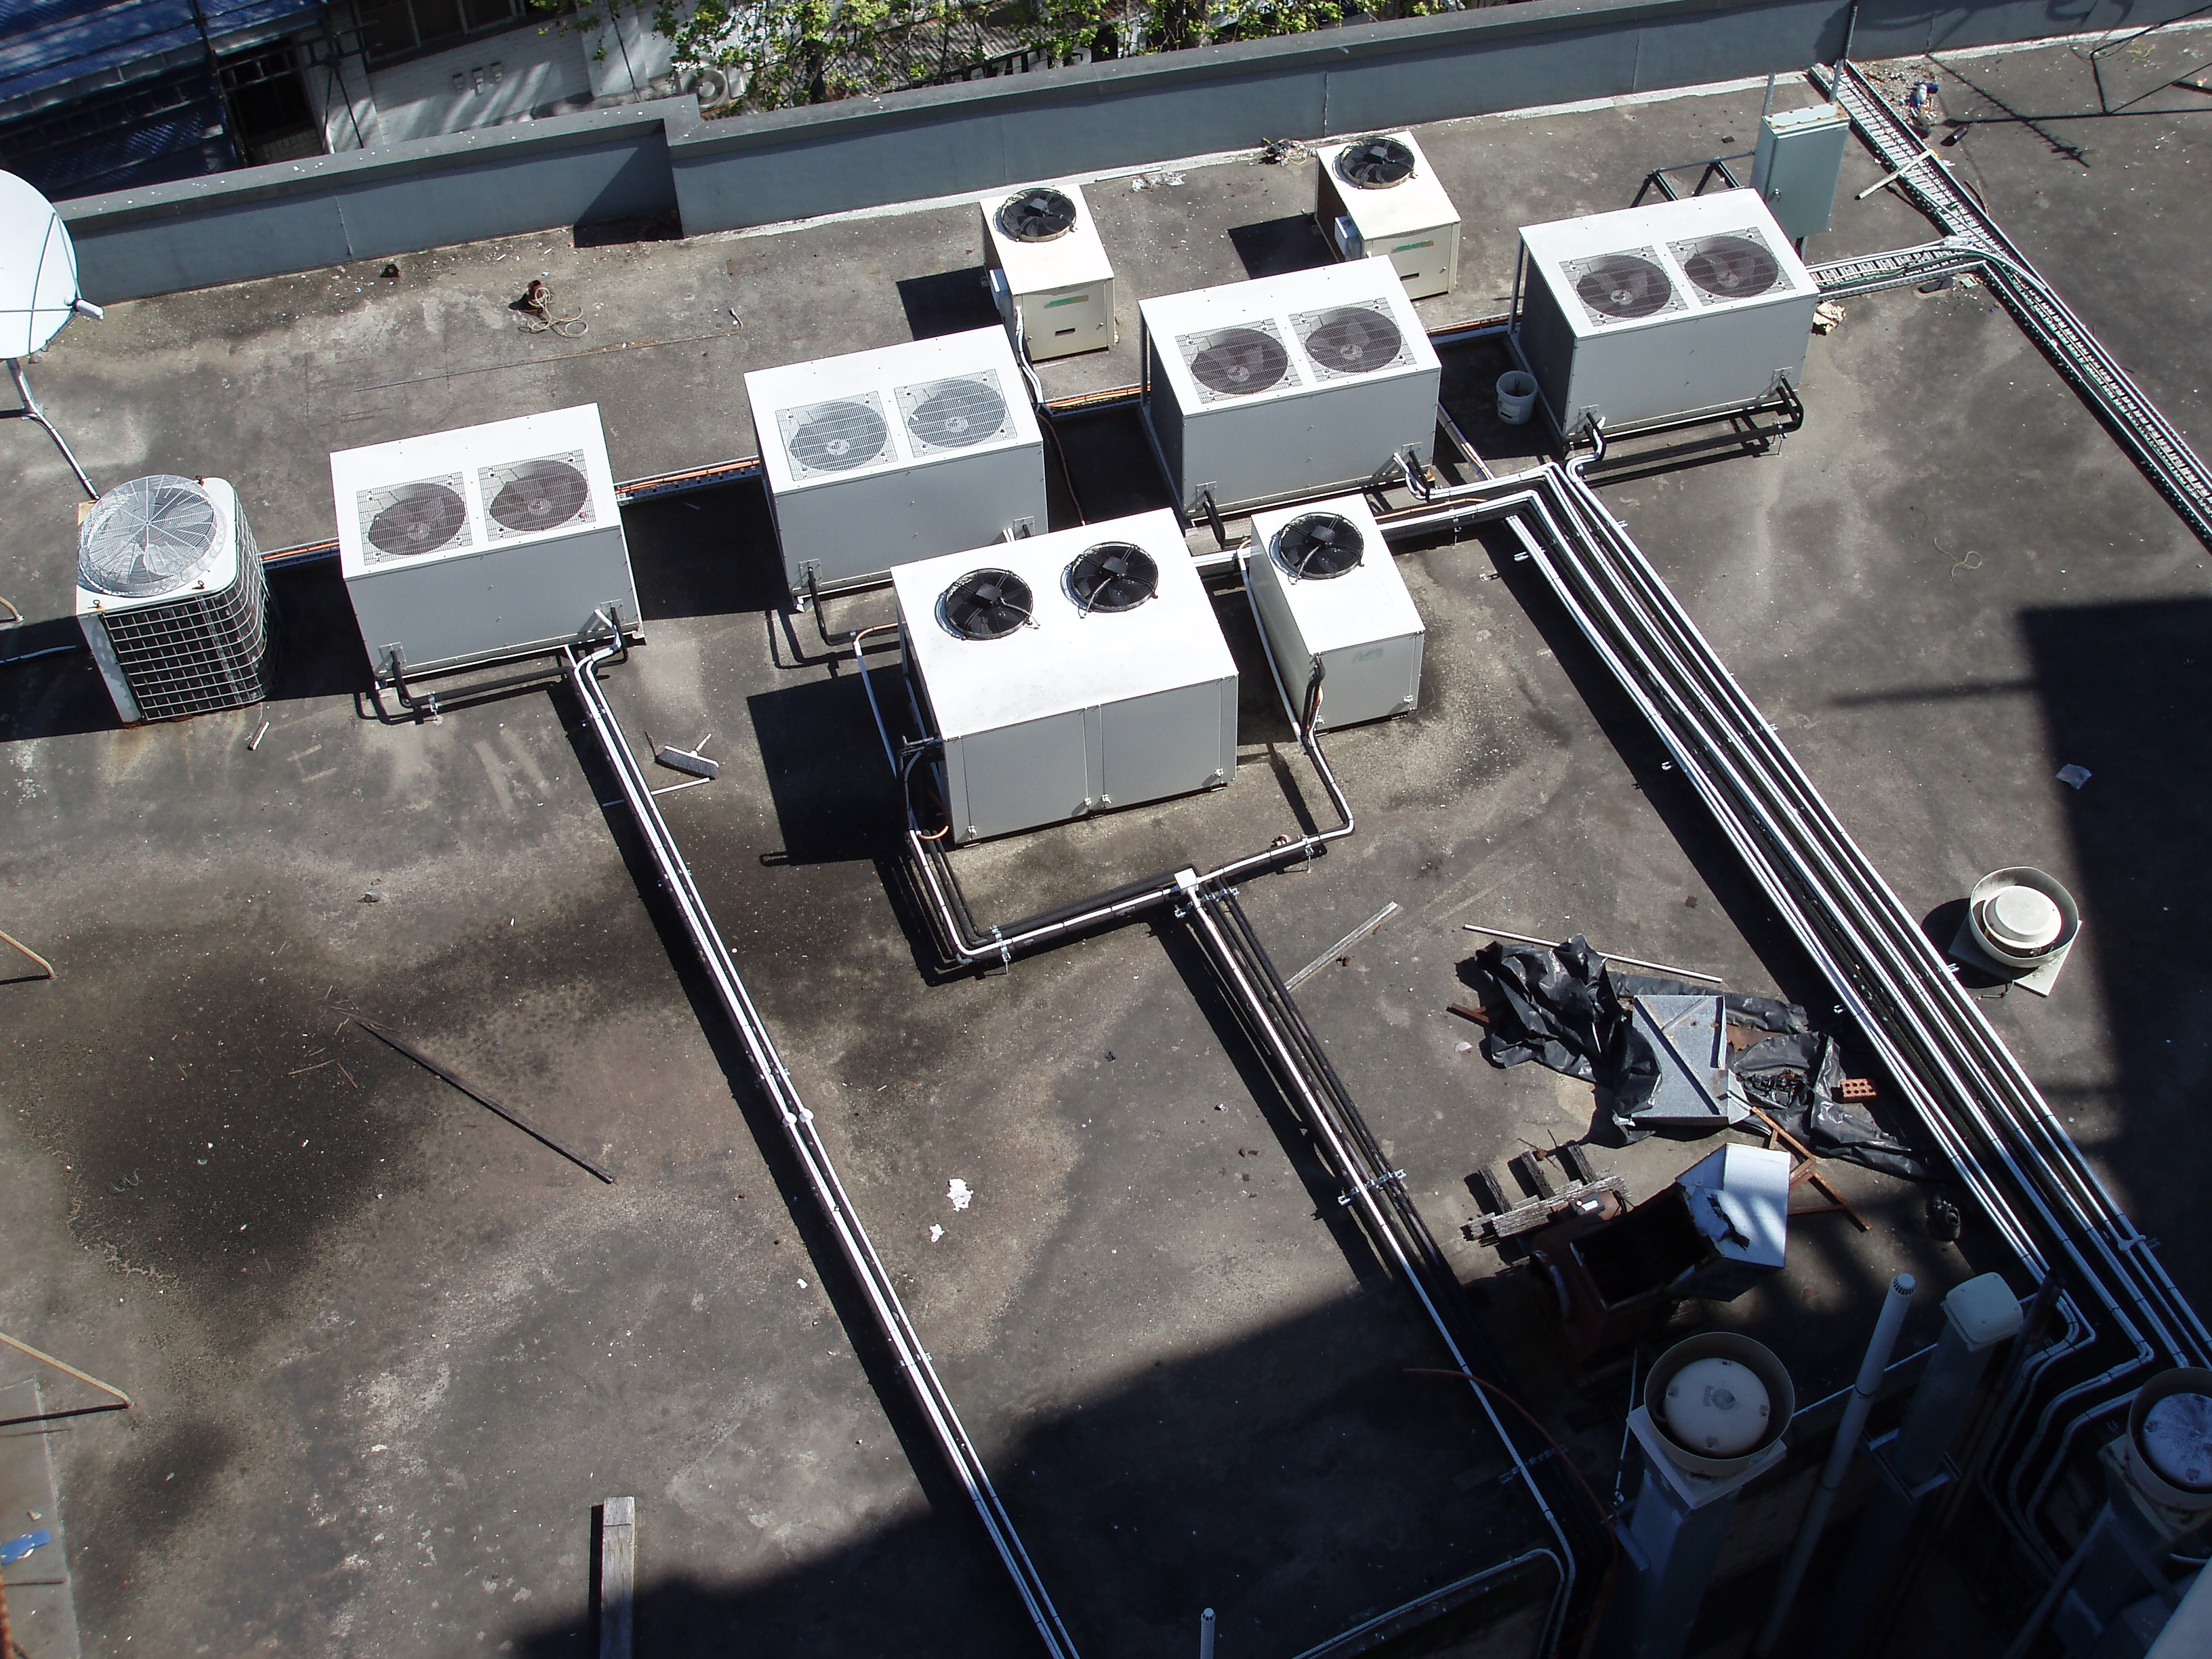 looking down on a rooftop full of airconditioning equipment